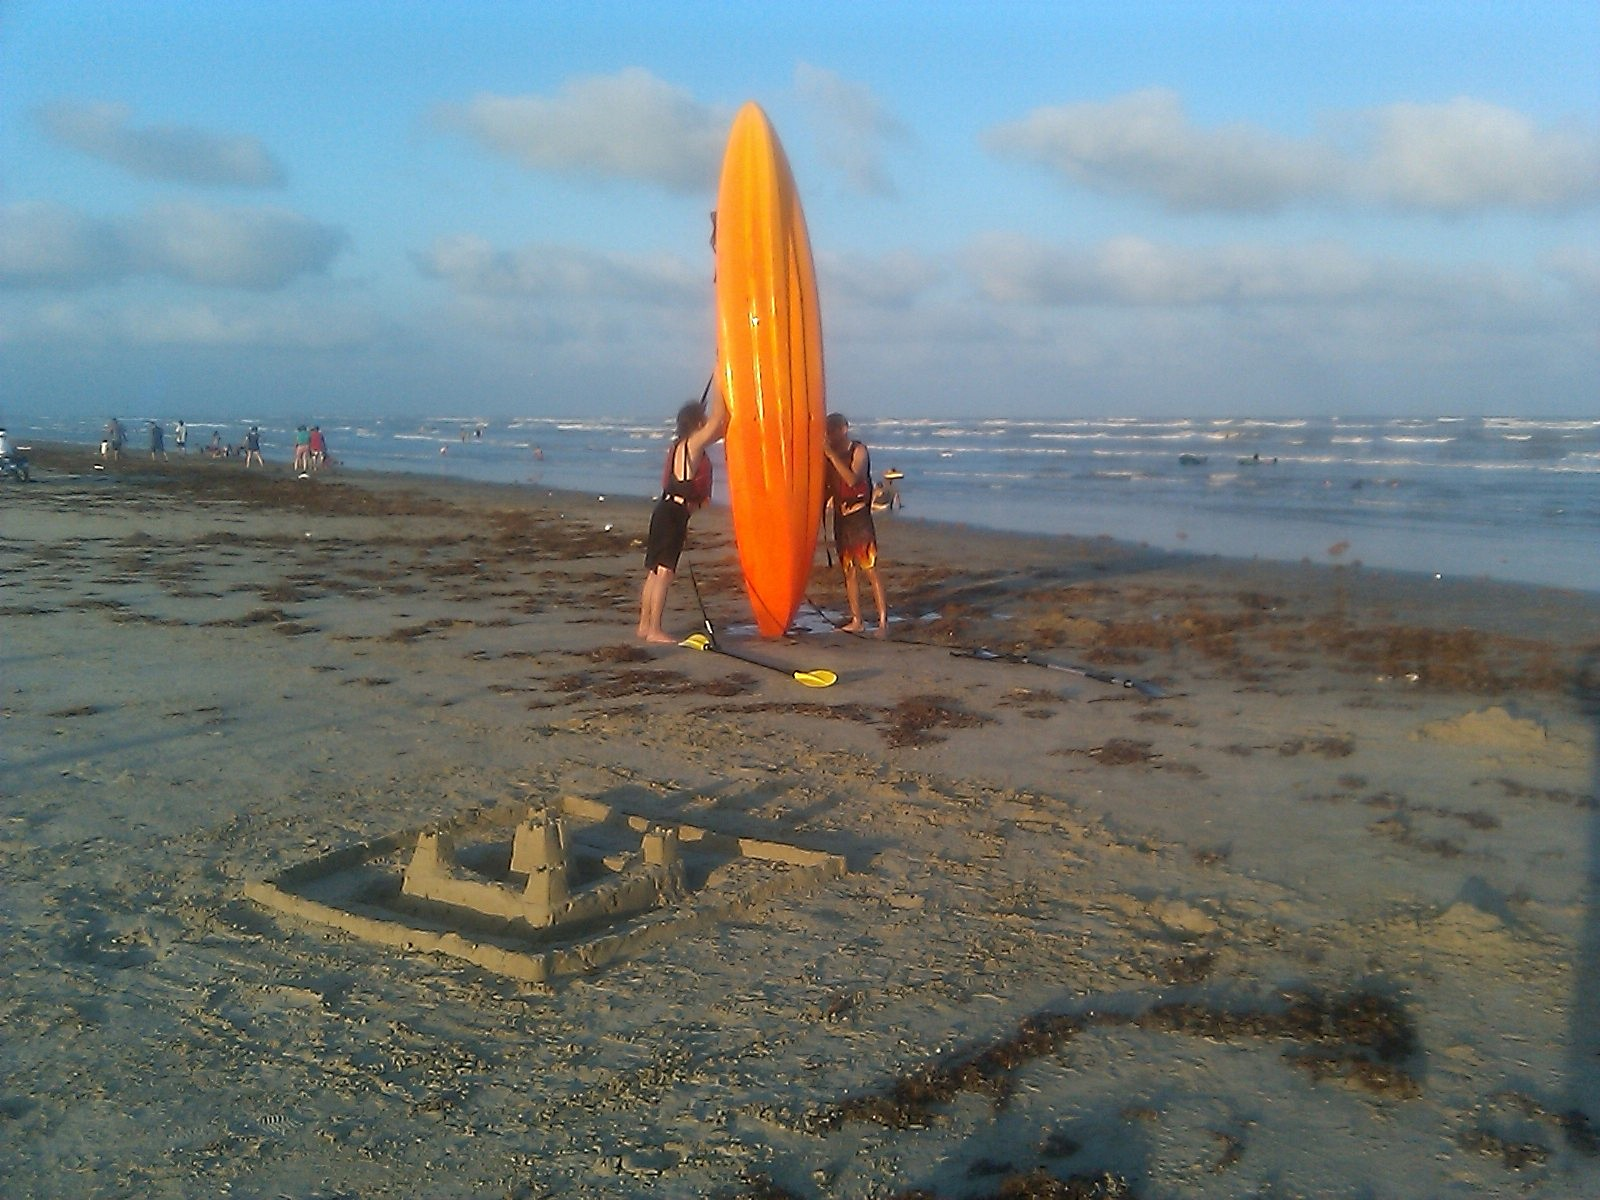 Sand Castle and Sea Kayak, Surfside